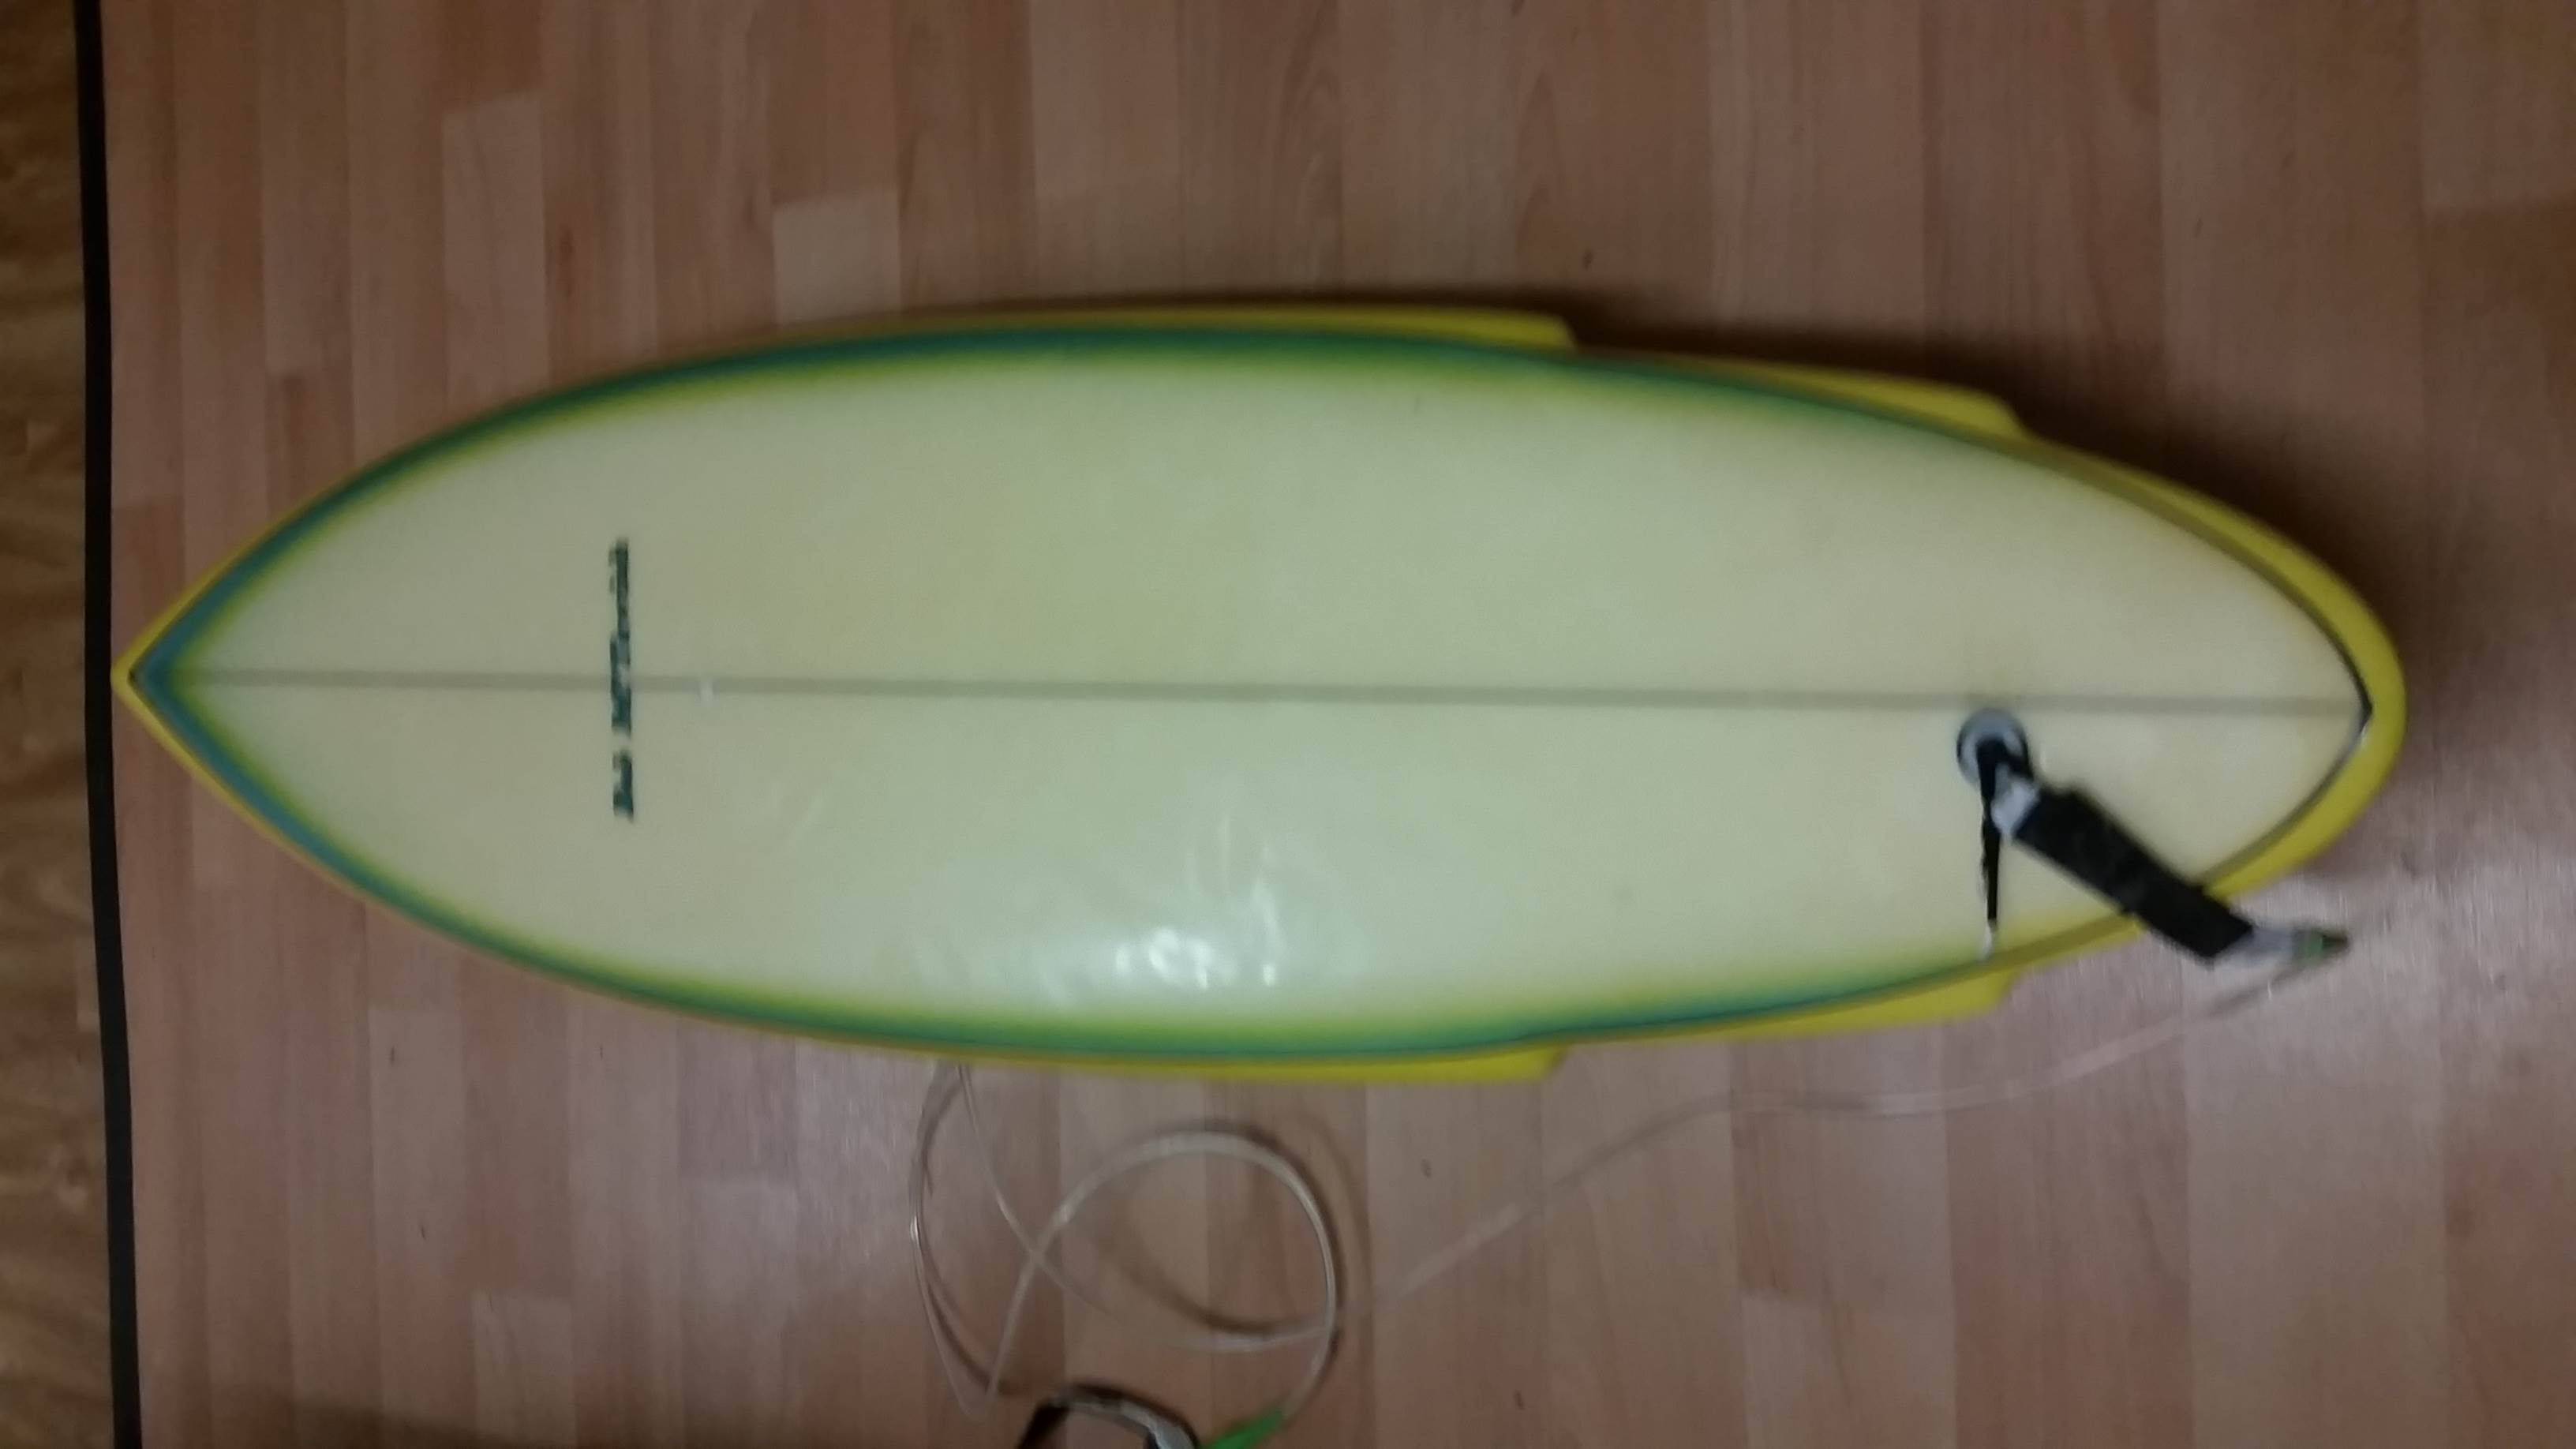 Lime themed shortboard